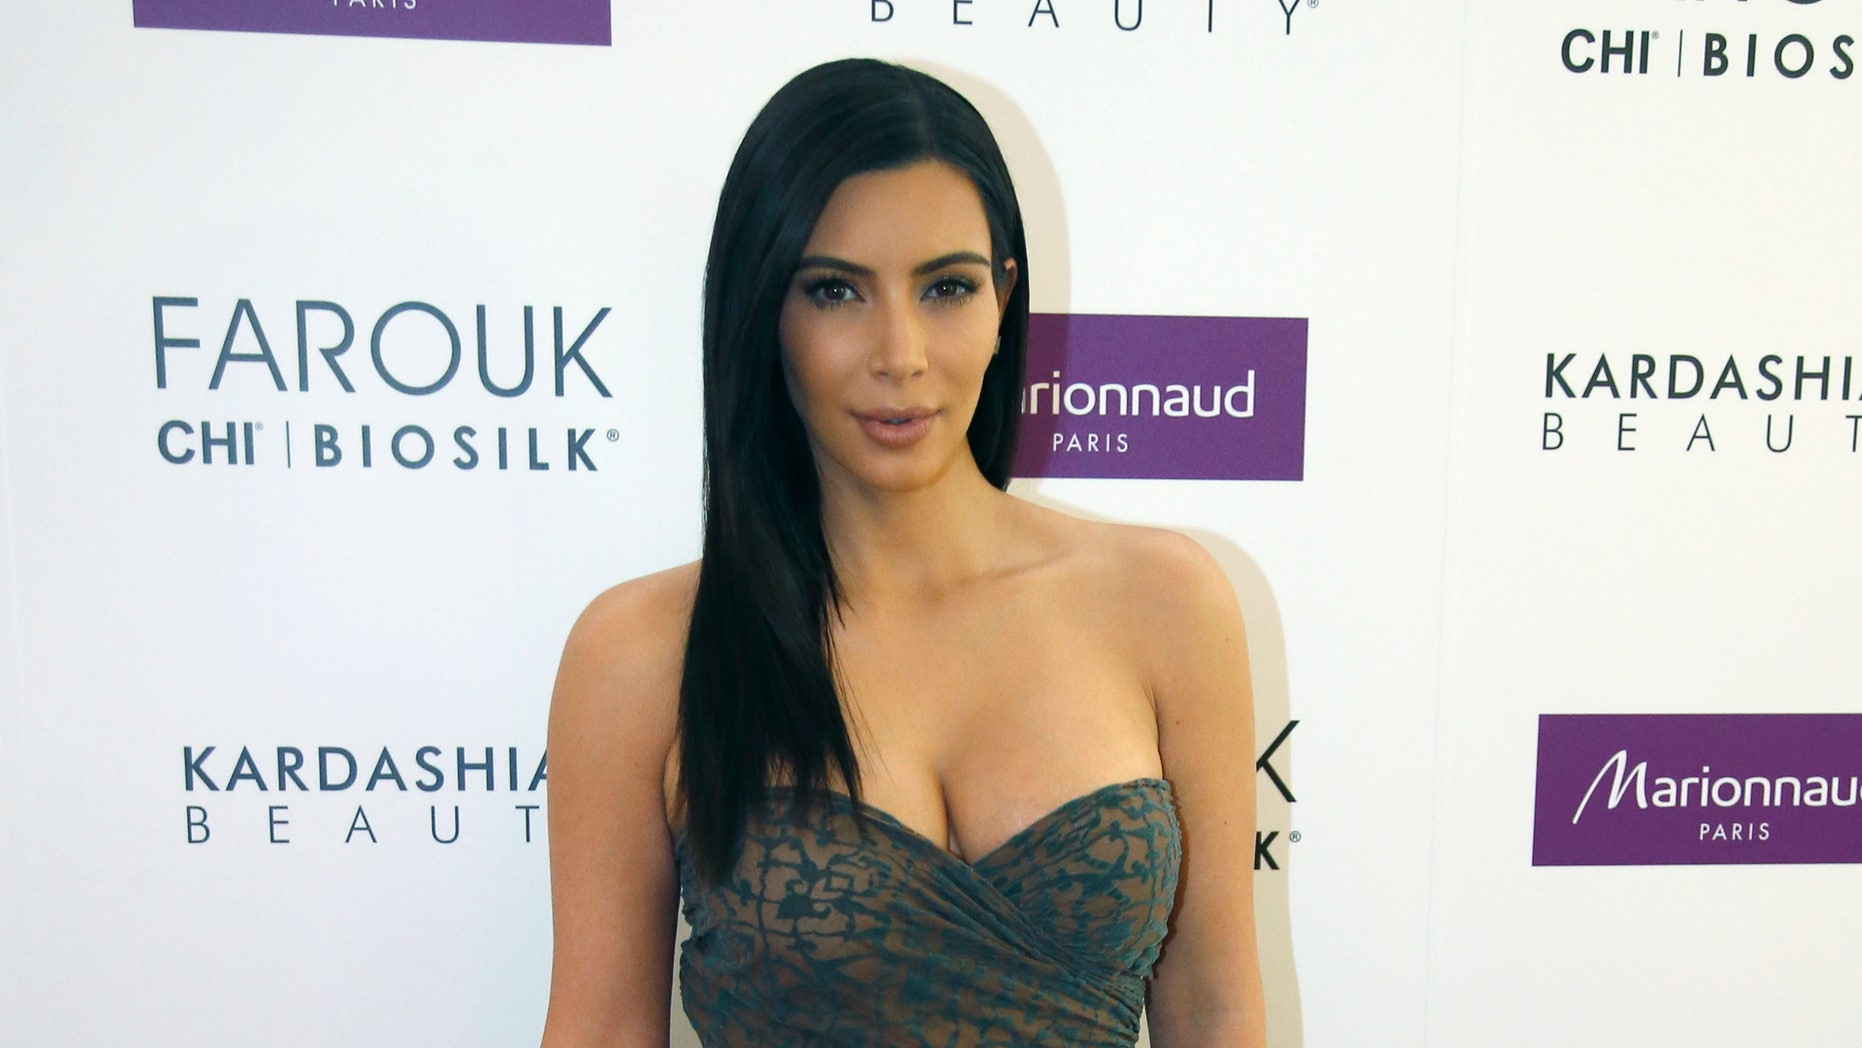 April 15, 2015. Kim Kardashian poses as she presents her Kardashian Beauty Hair collection for Marionnaud at the flagship store on the Champs-Elysees in Paris.